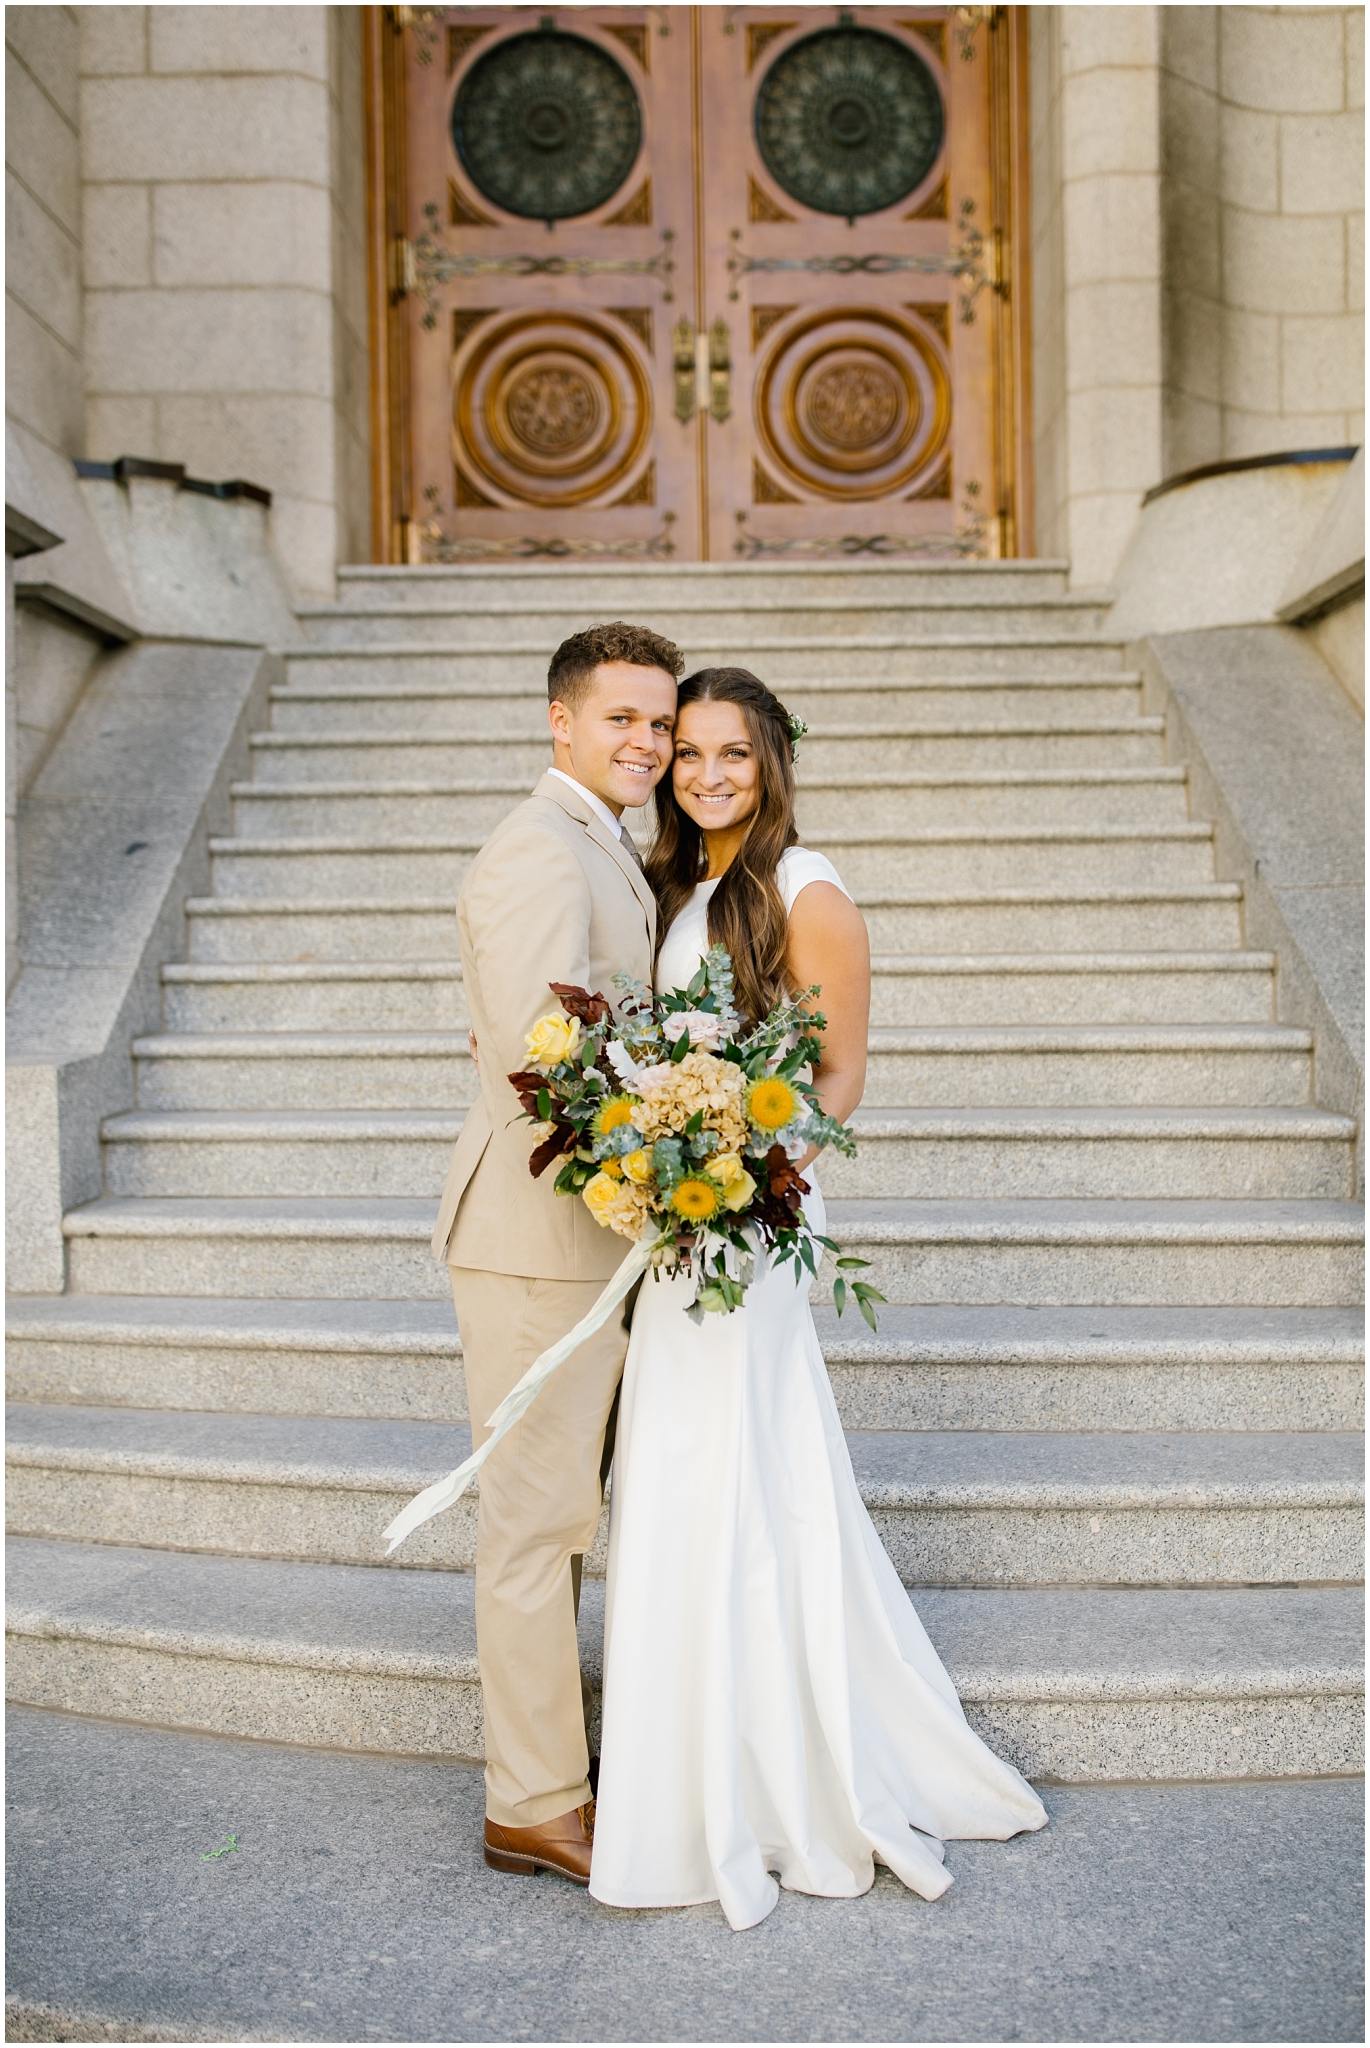 JC-Wedding-186_Lizzie-B-Imagery-Utah-Wedding-Photographer-Park-City-Salt-Lake-City-Temple-Joseph-Smith-Memorial-Building-Empire-Room.jpg